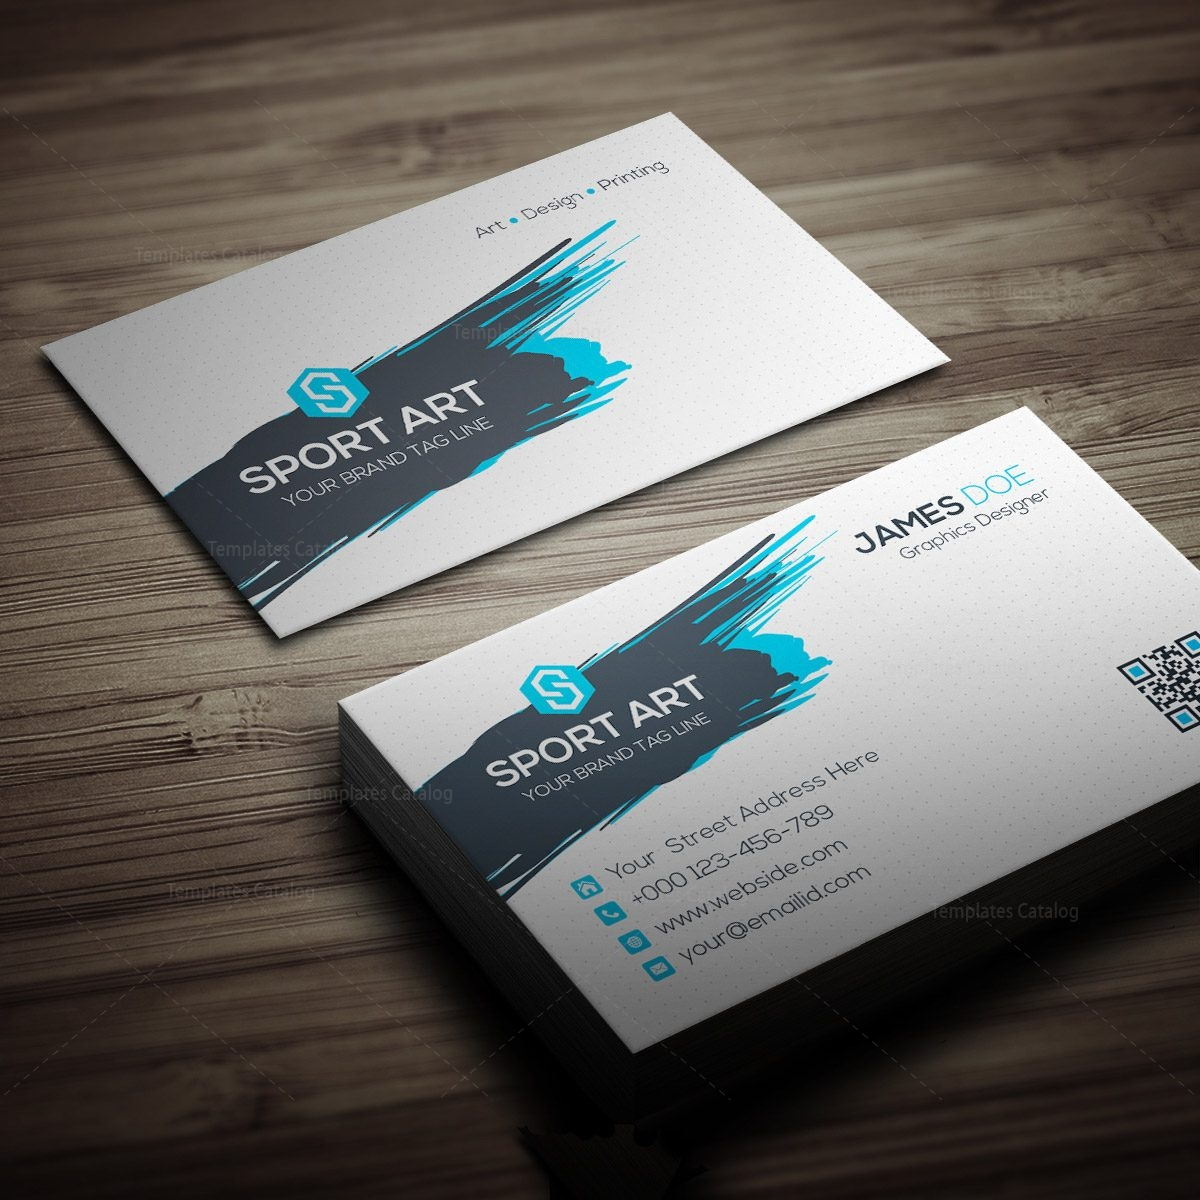 Sport Art Business Card Template 000267 - Template Catalog